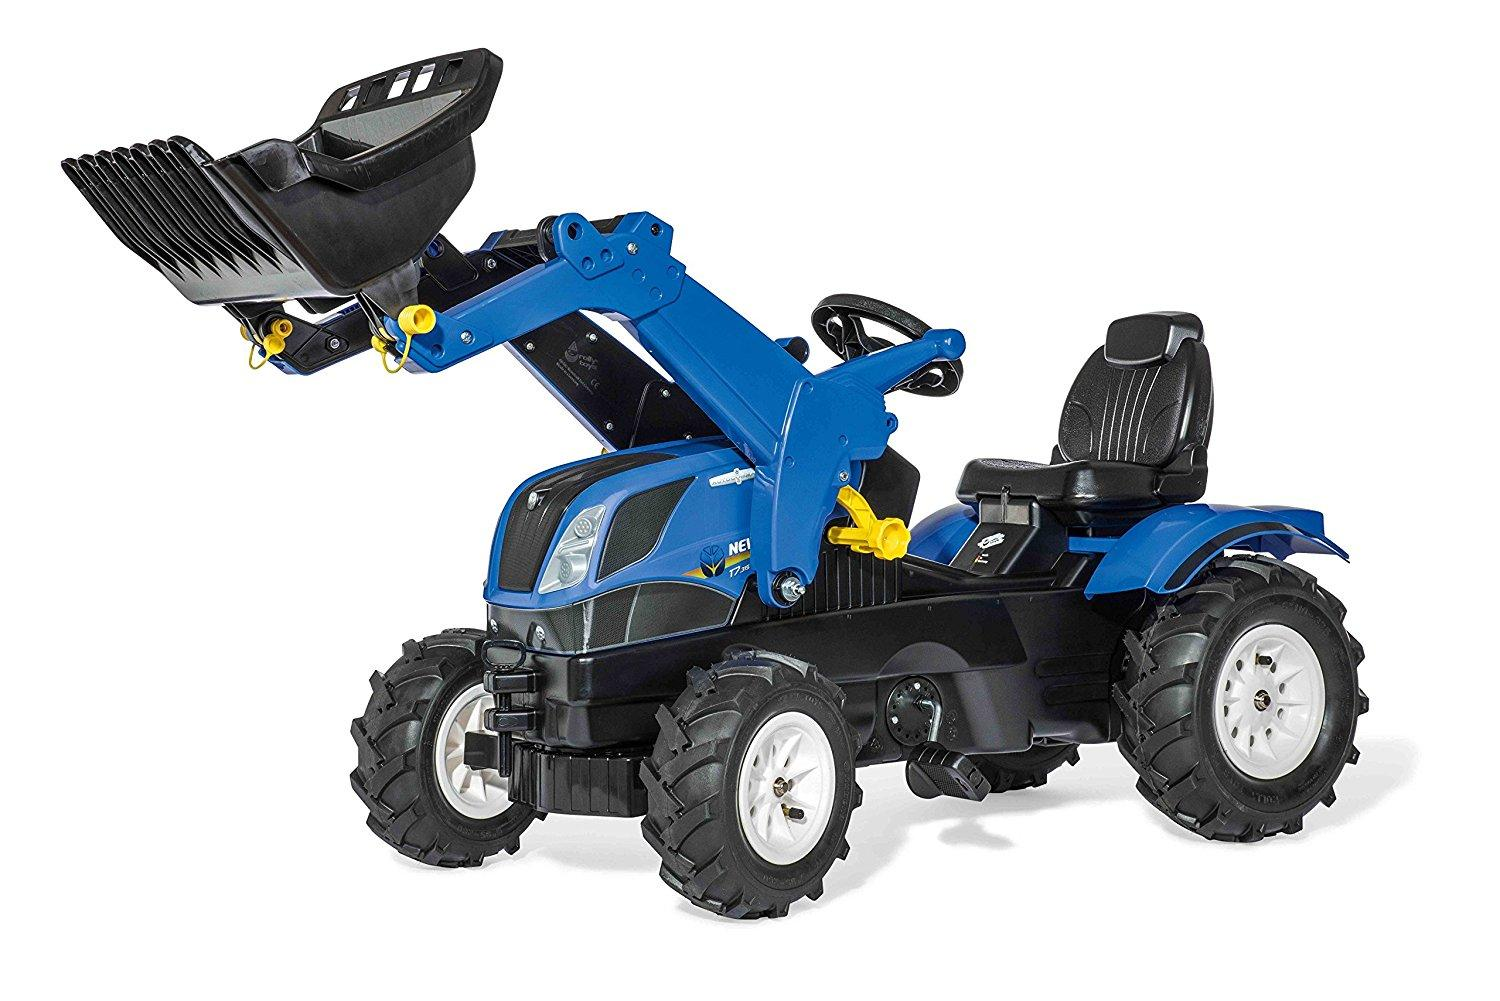 ROLLY TOYS TRATTORE A PEDALI FARMTRAC NEW HOLLAND CON BENNA COD. 611270